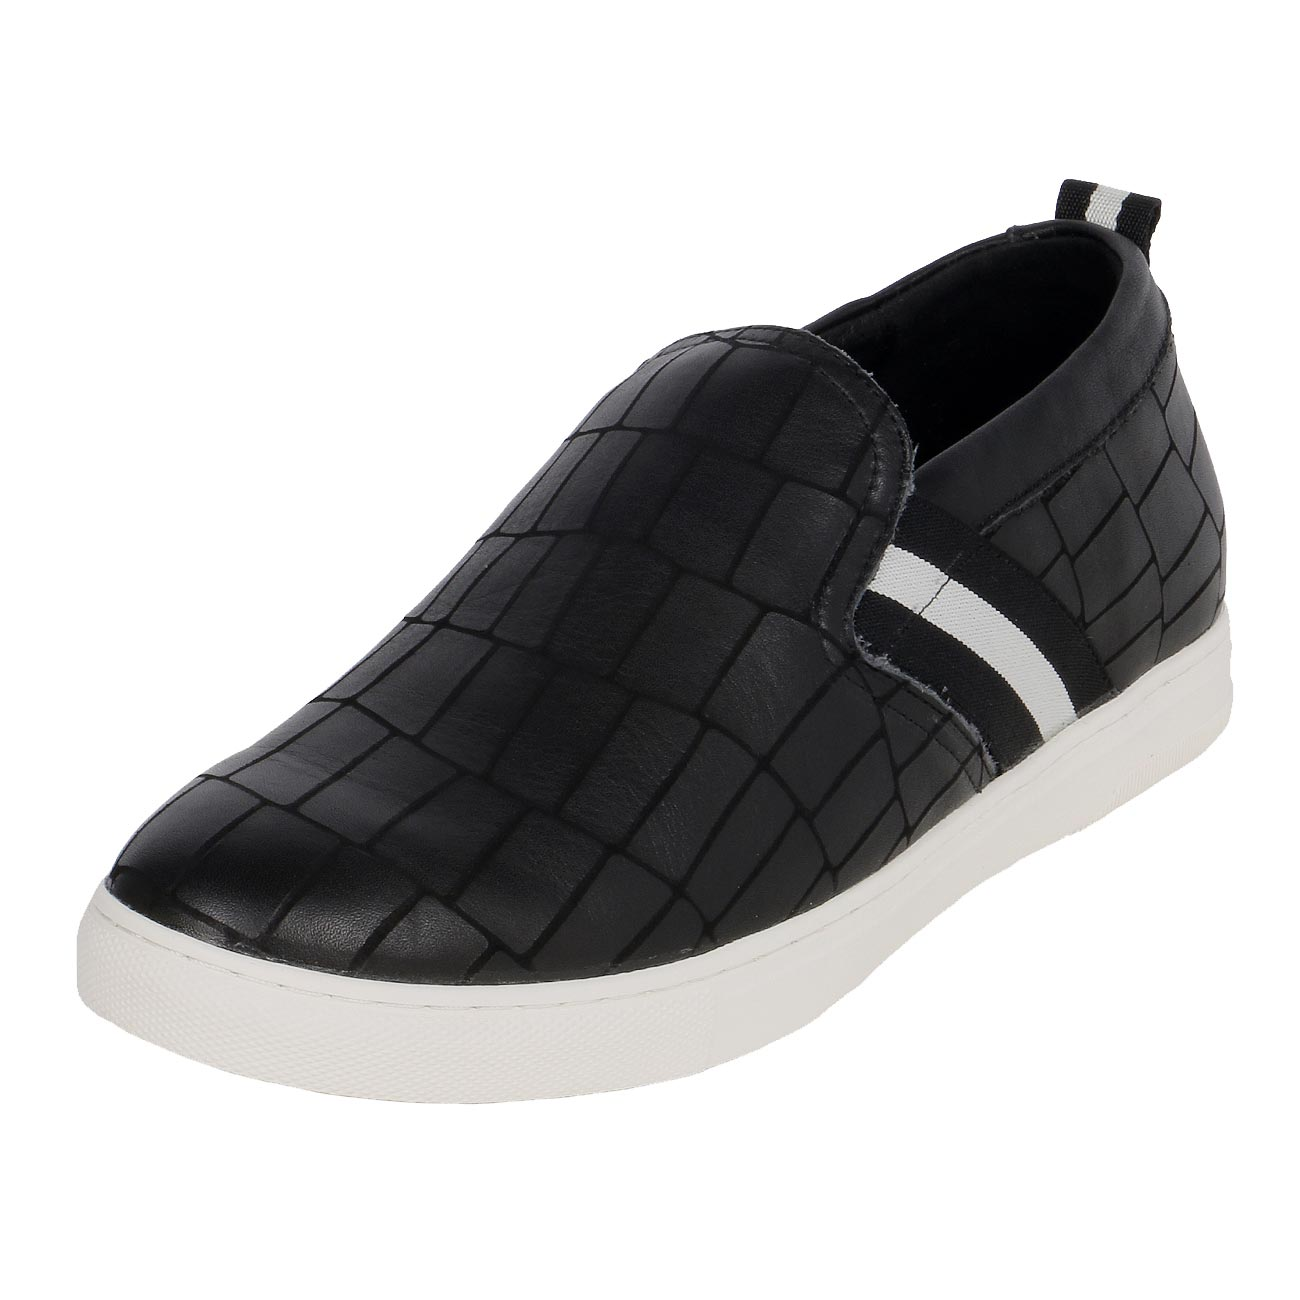 Leather Casual Slip-On Versatile Cool Style Shoe 2 inch Tall